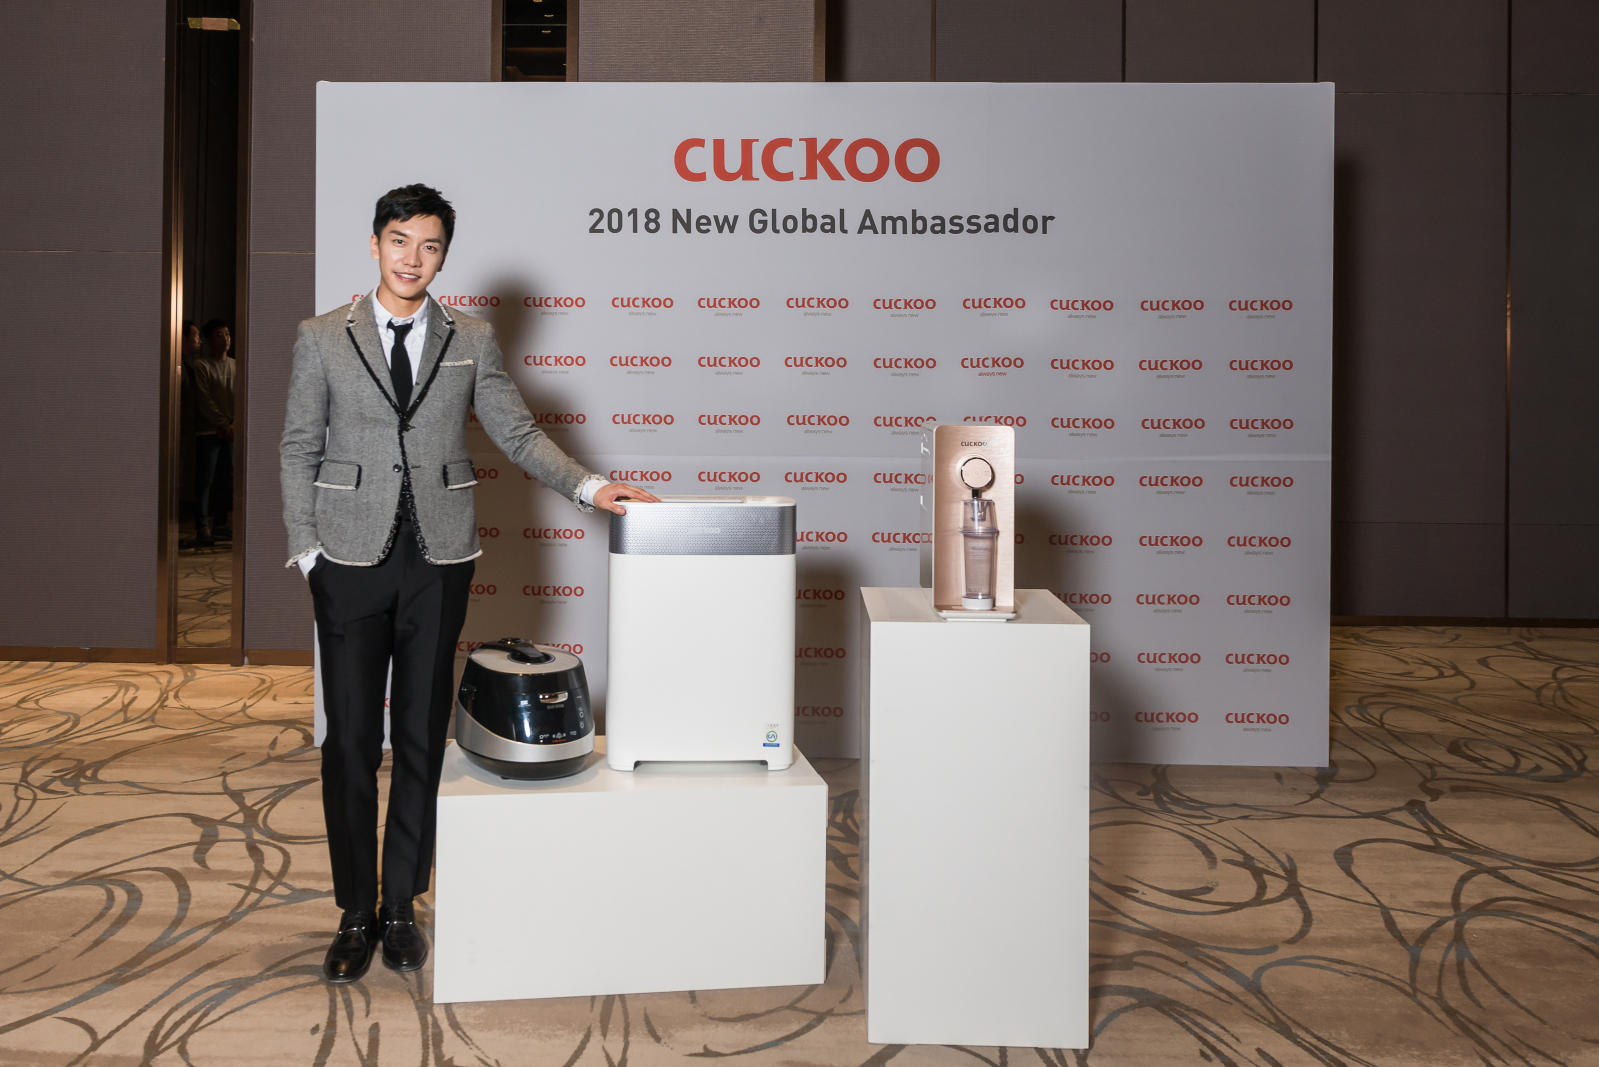 Lee Seung-gi posing for a photo with a wide range of Cuckoo products.